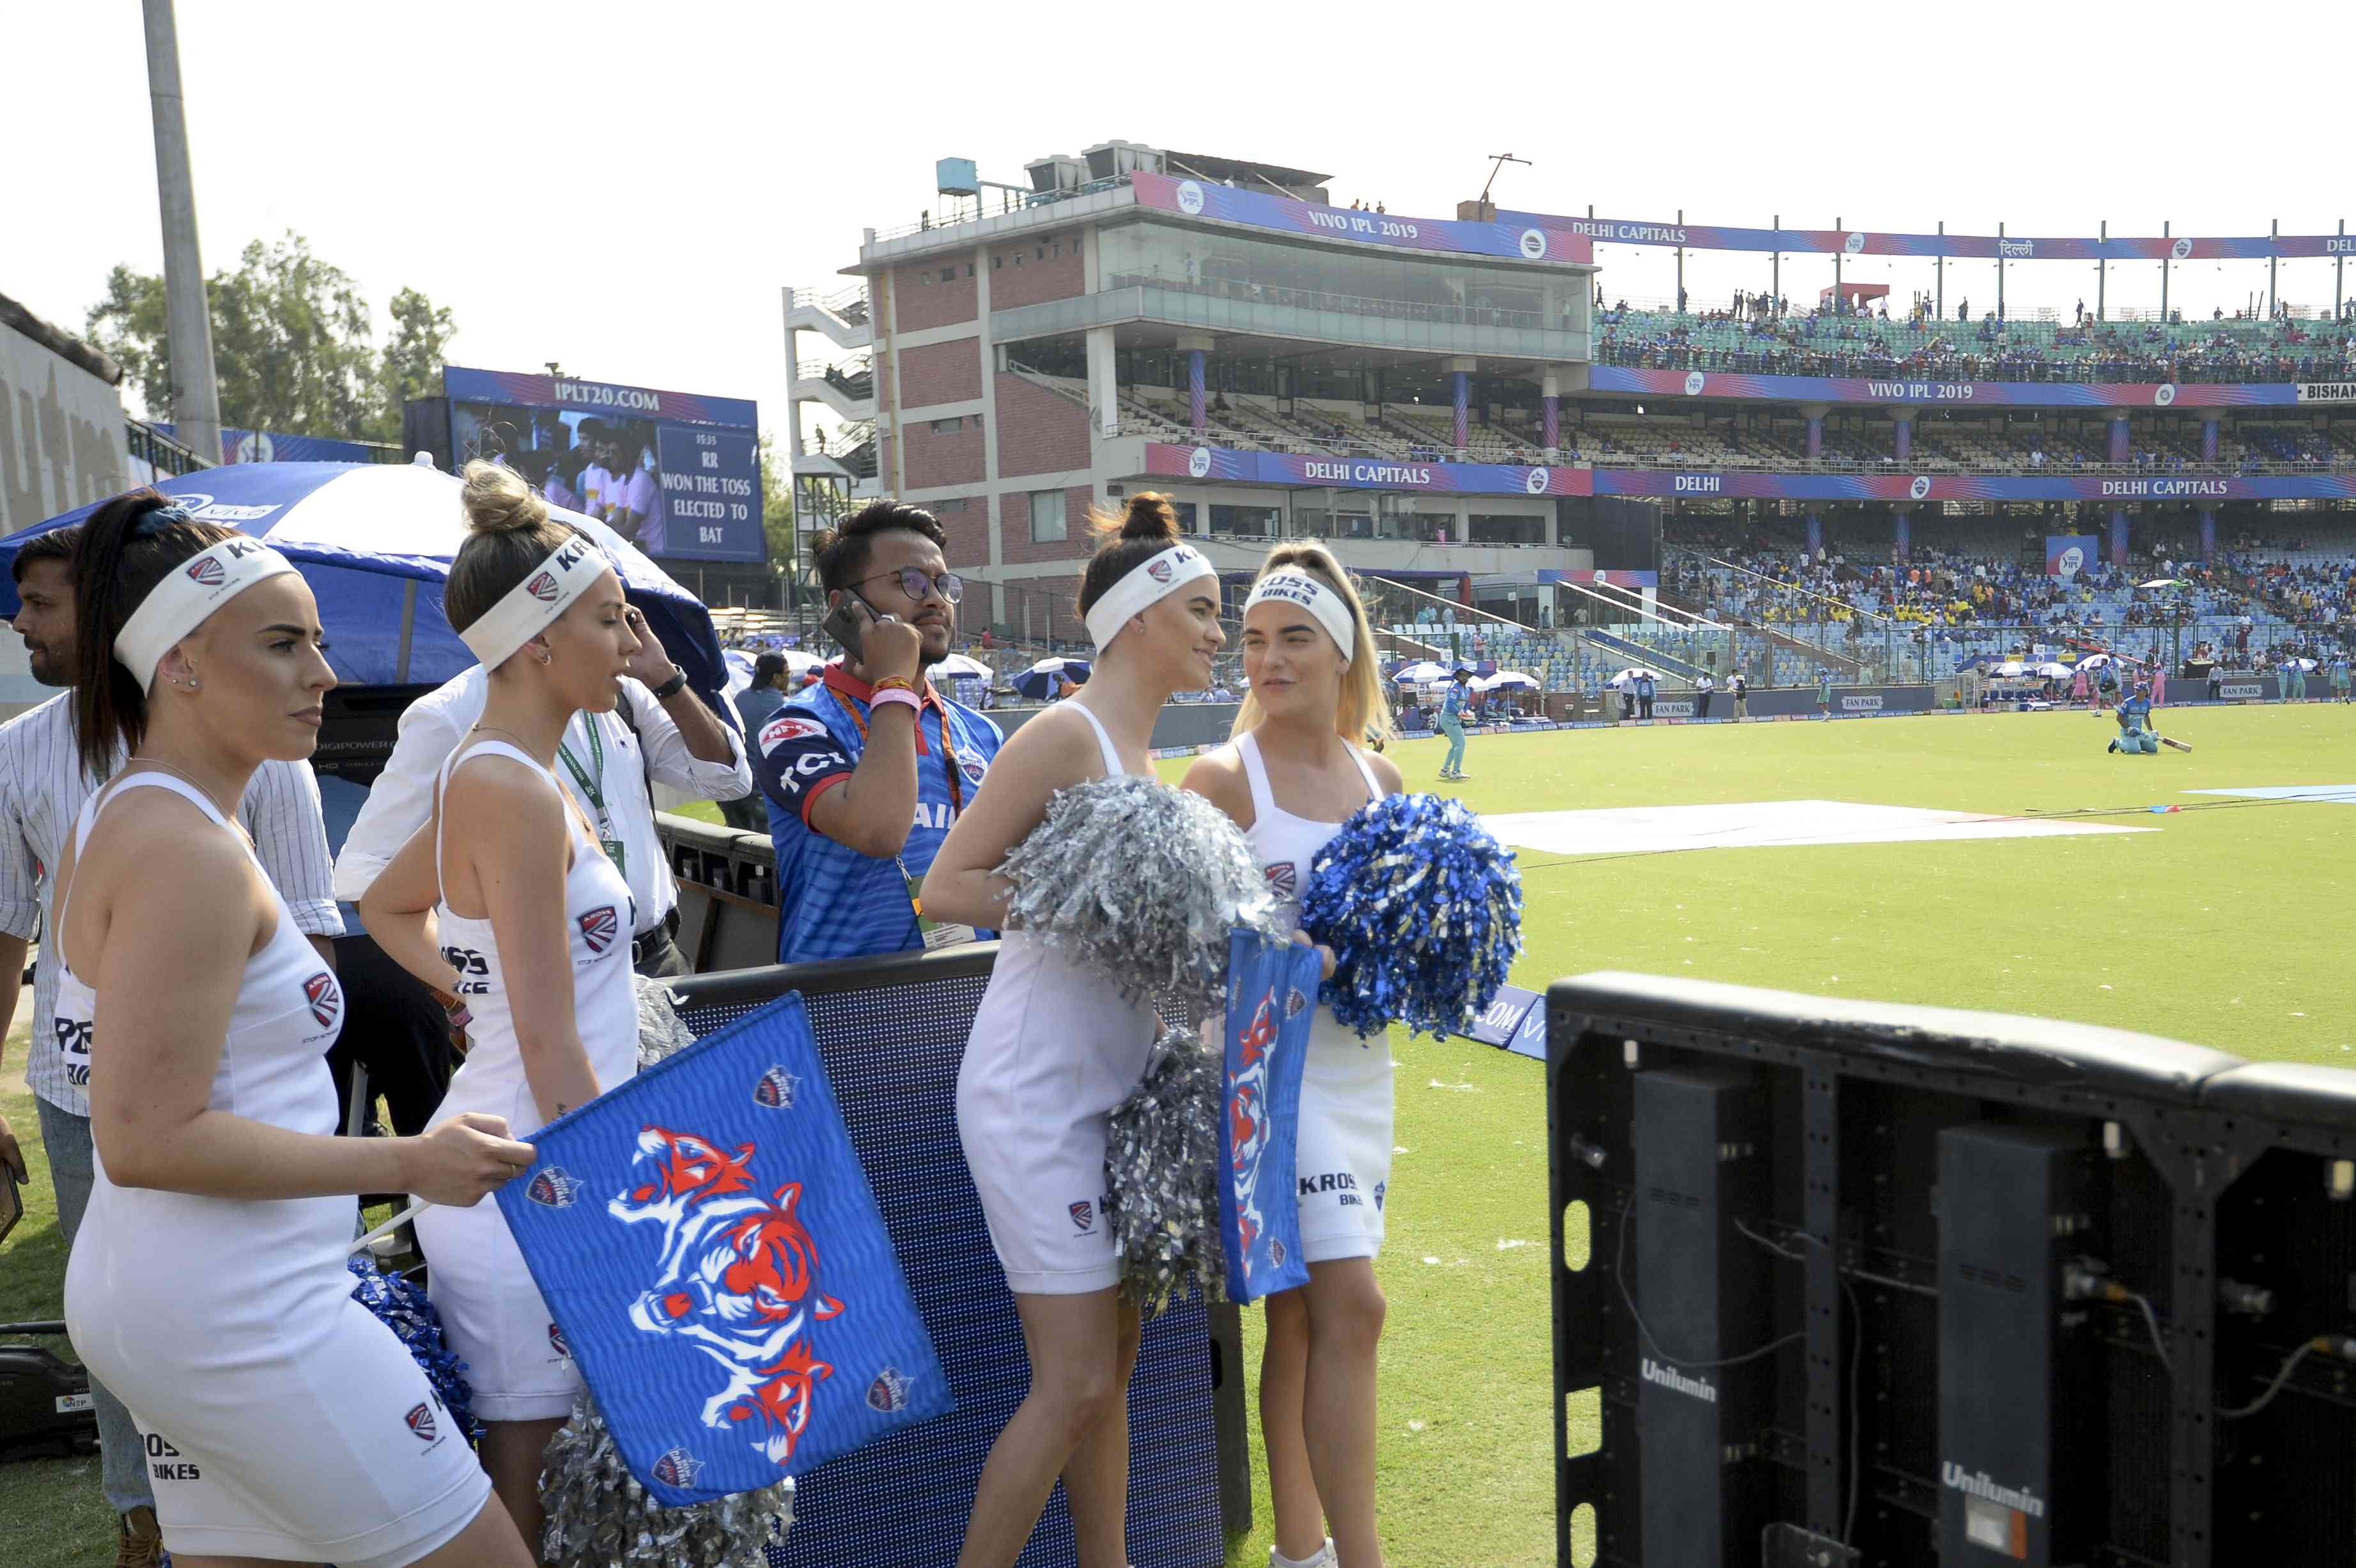 Delhi Capitals cheerleaders during a match (AFP)